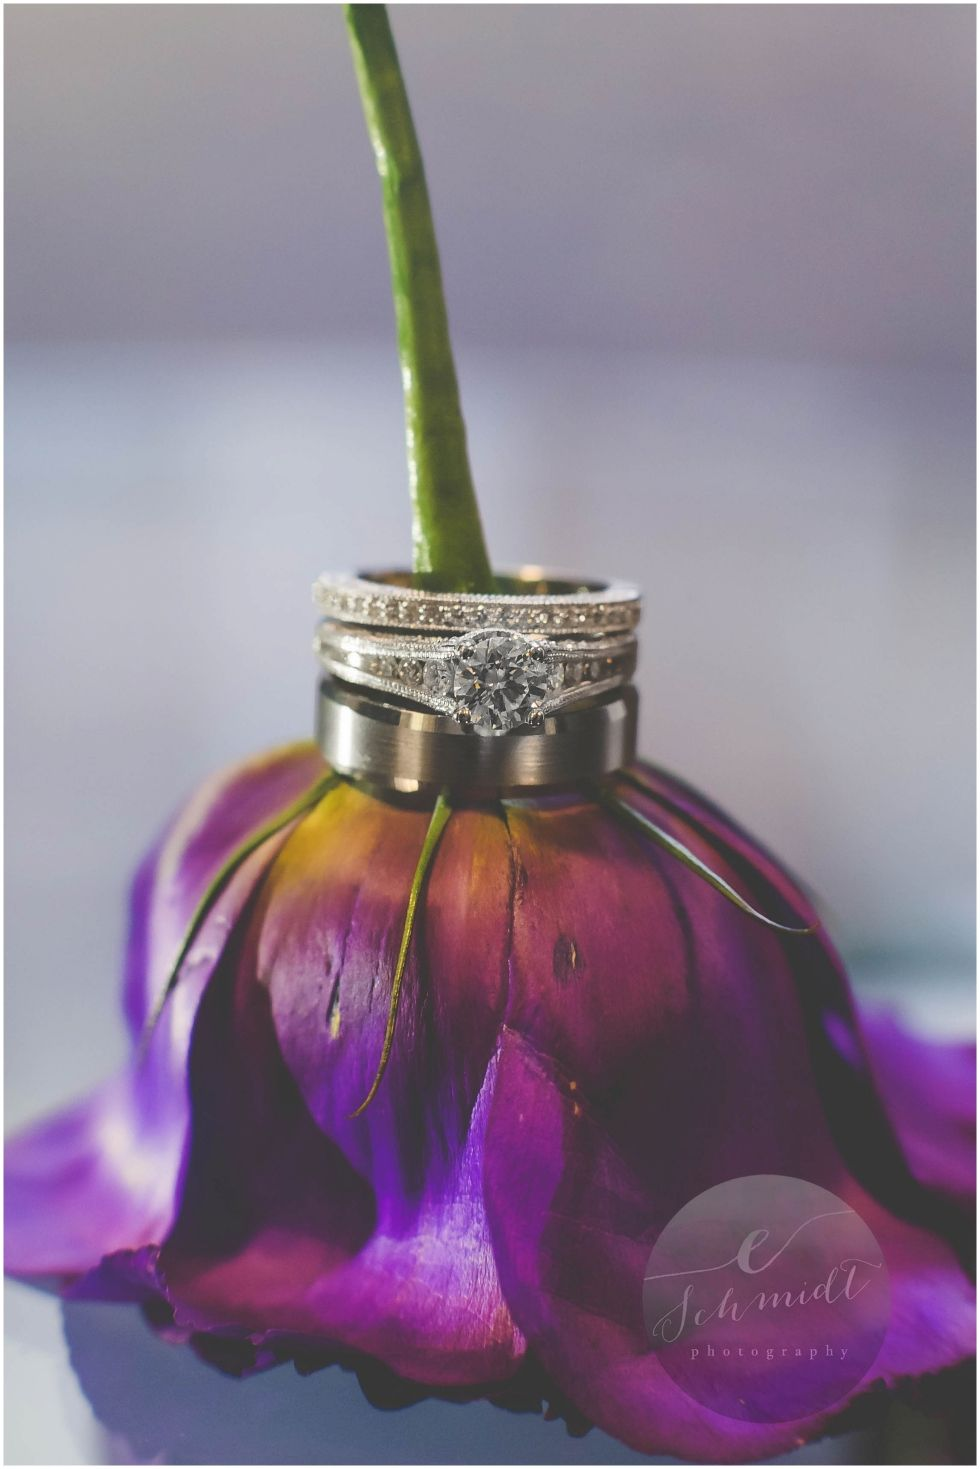 Ring Shot | E Schmidt Photography | Metro Detroit Wedding Photographer